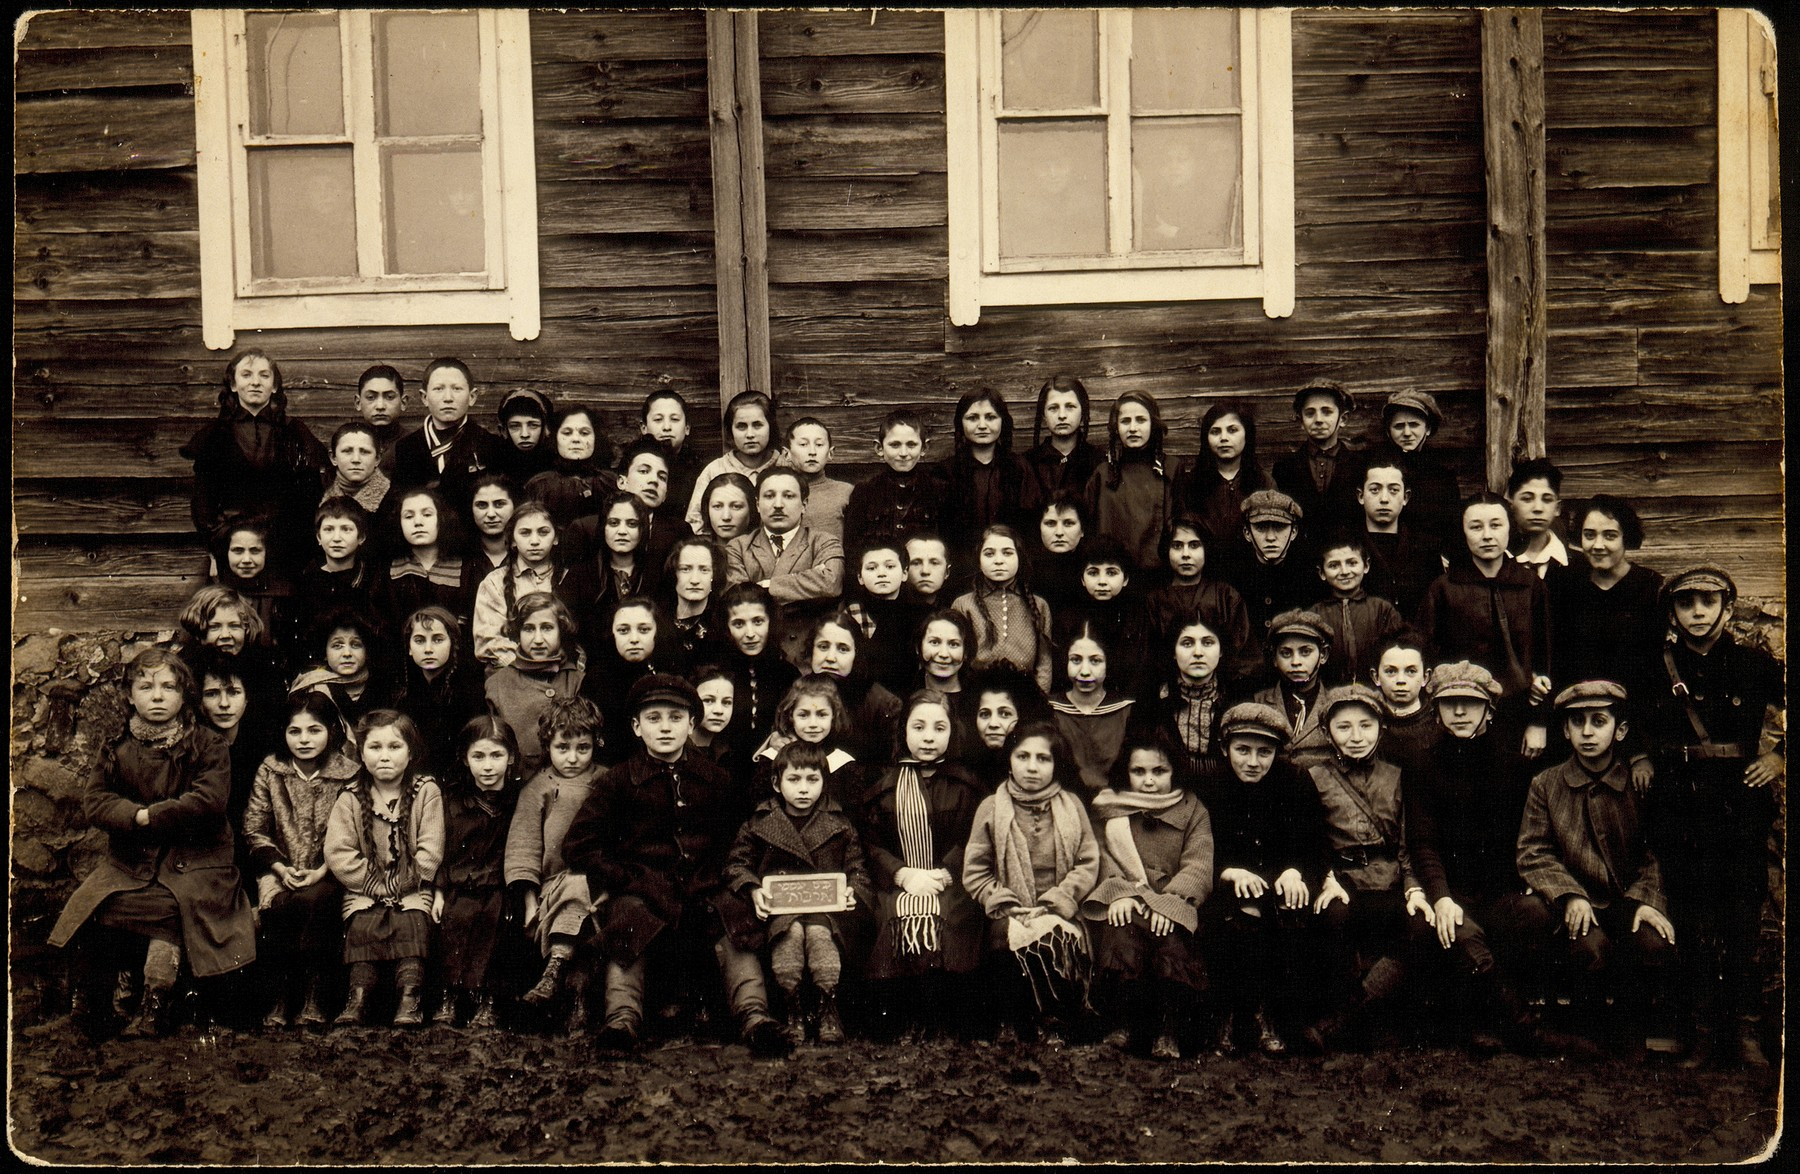 Students of the Tarbut school in Eisiskes.   The teacher, Mr. Pitochowski is sitting with his arms crossed.